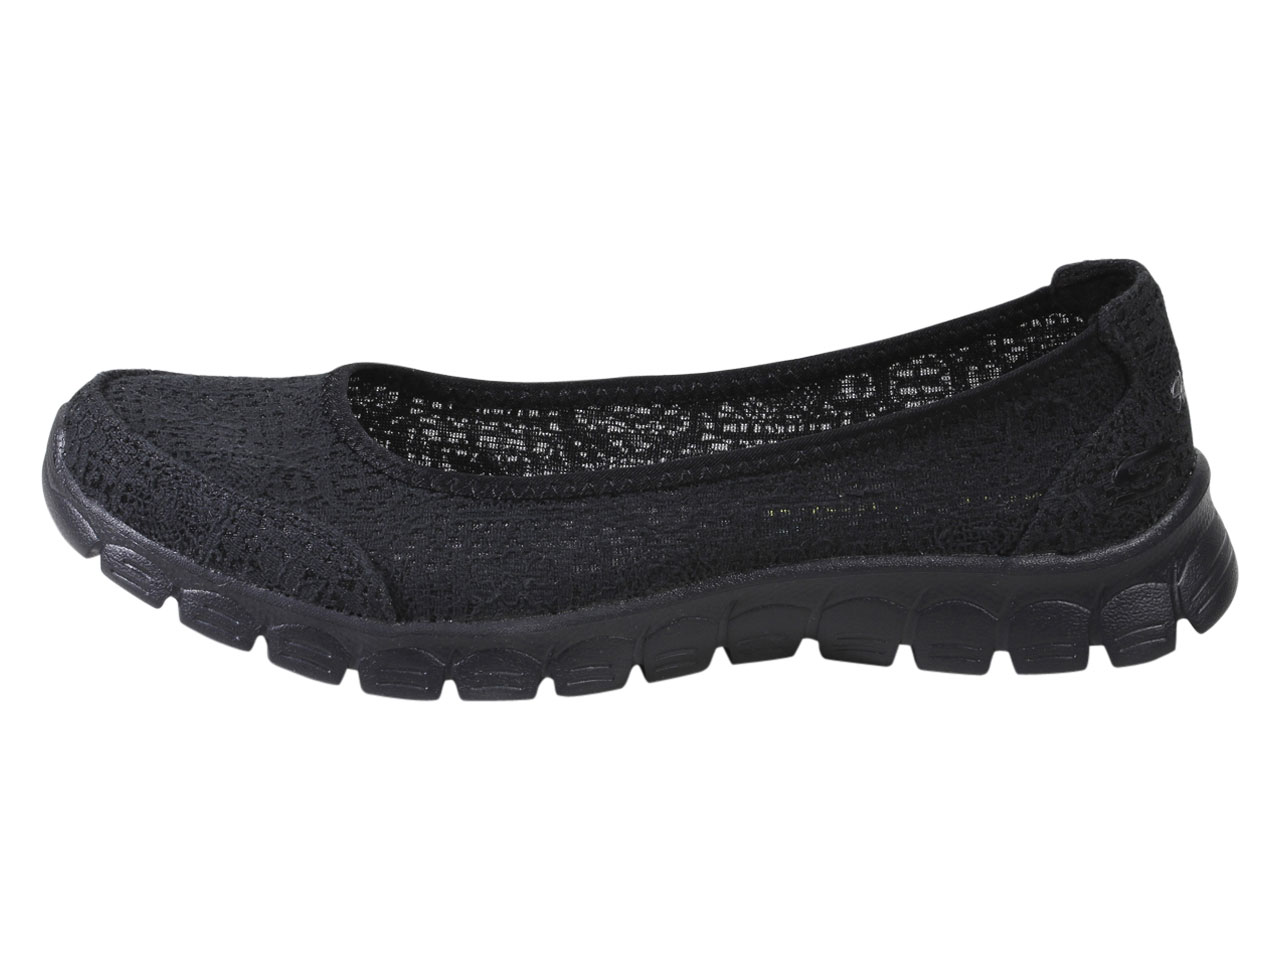 Details about Skechers EZ-Flex-3.0 Beautify Memory Foam Ballet Flats Shoes